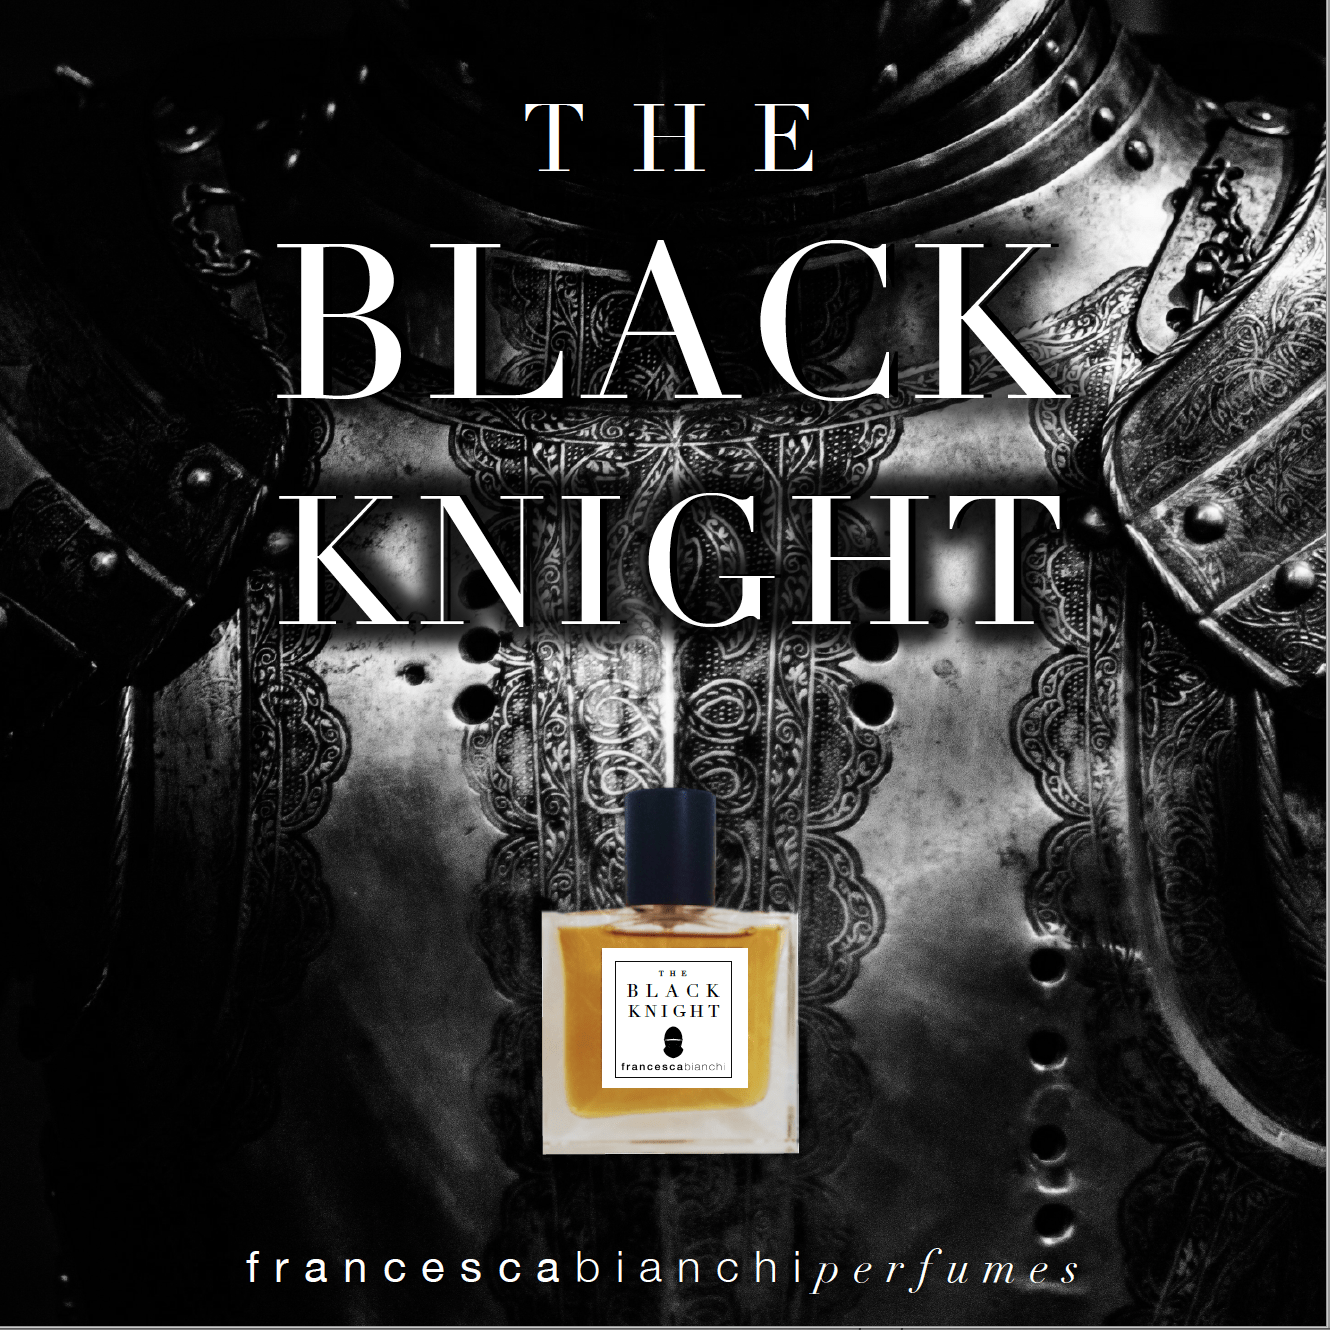 The Black Knight - Francesca Bianchi Perfumes